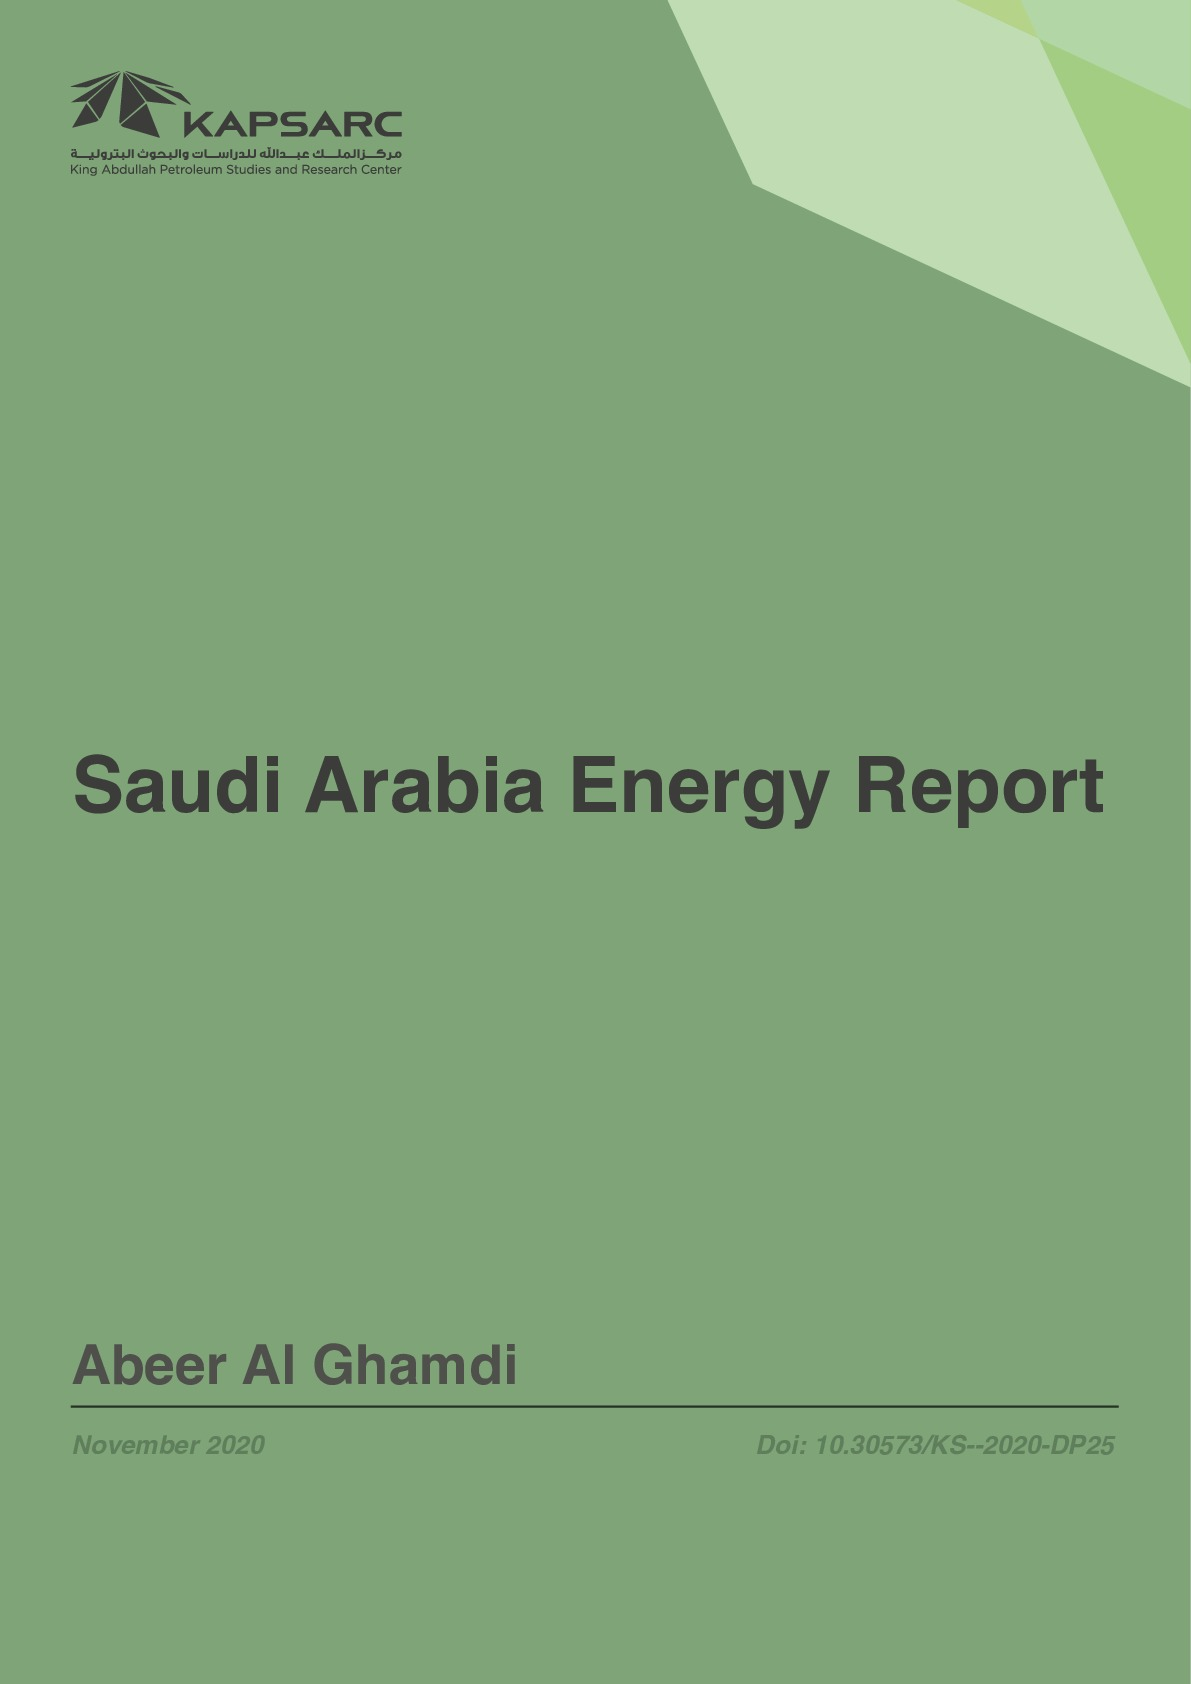 Saudi Arabia Energy Report